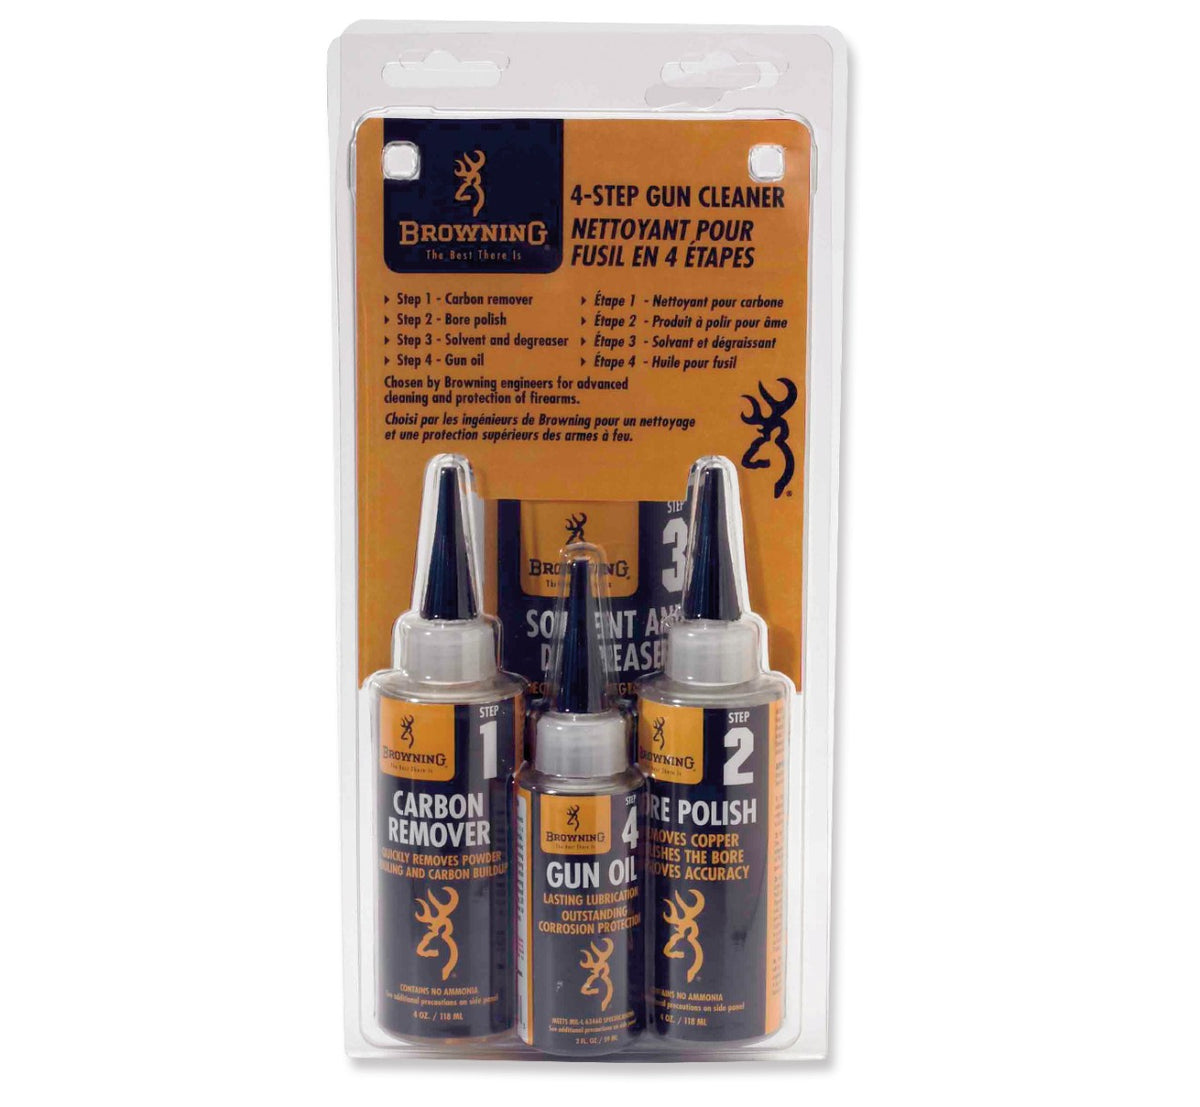 GUN CARE,4-STEP CLNR, PREPACK